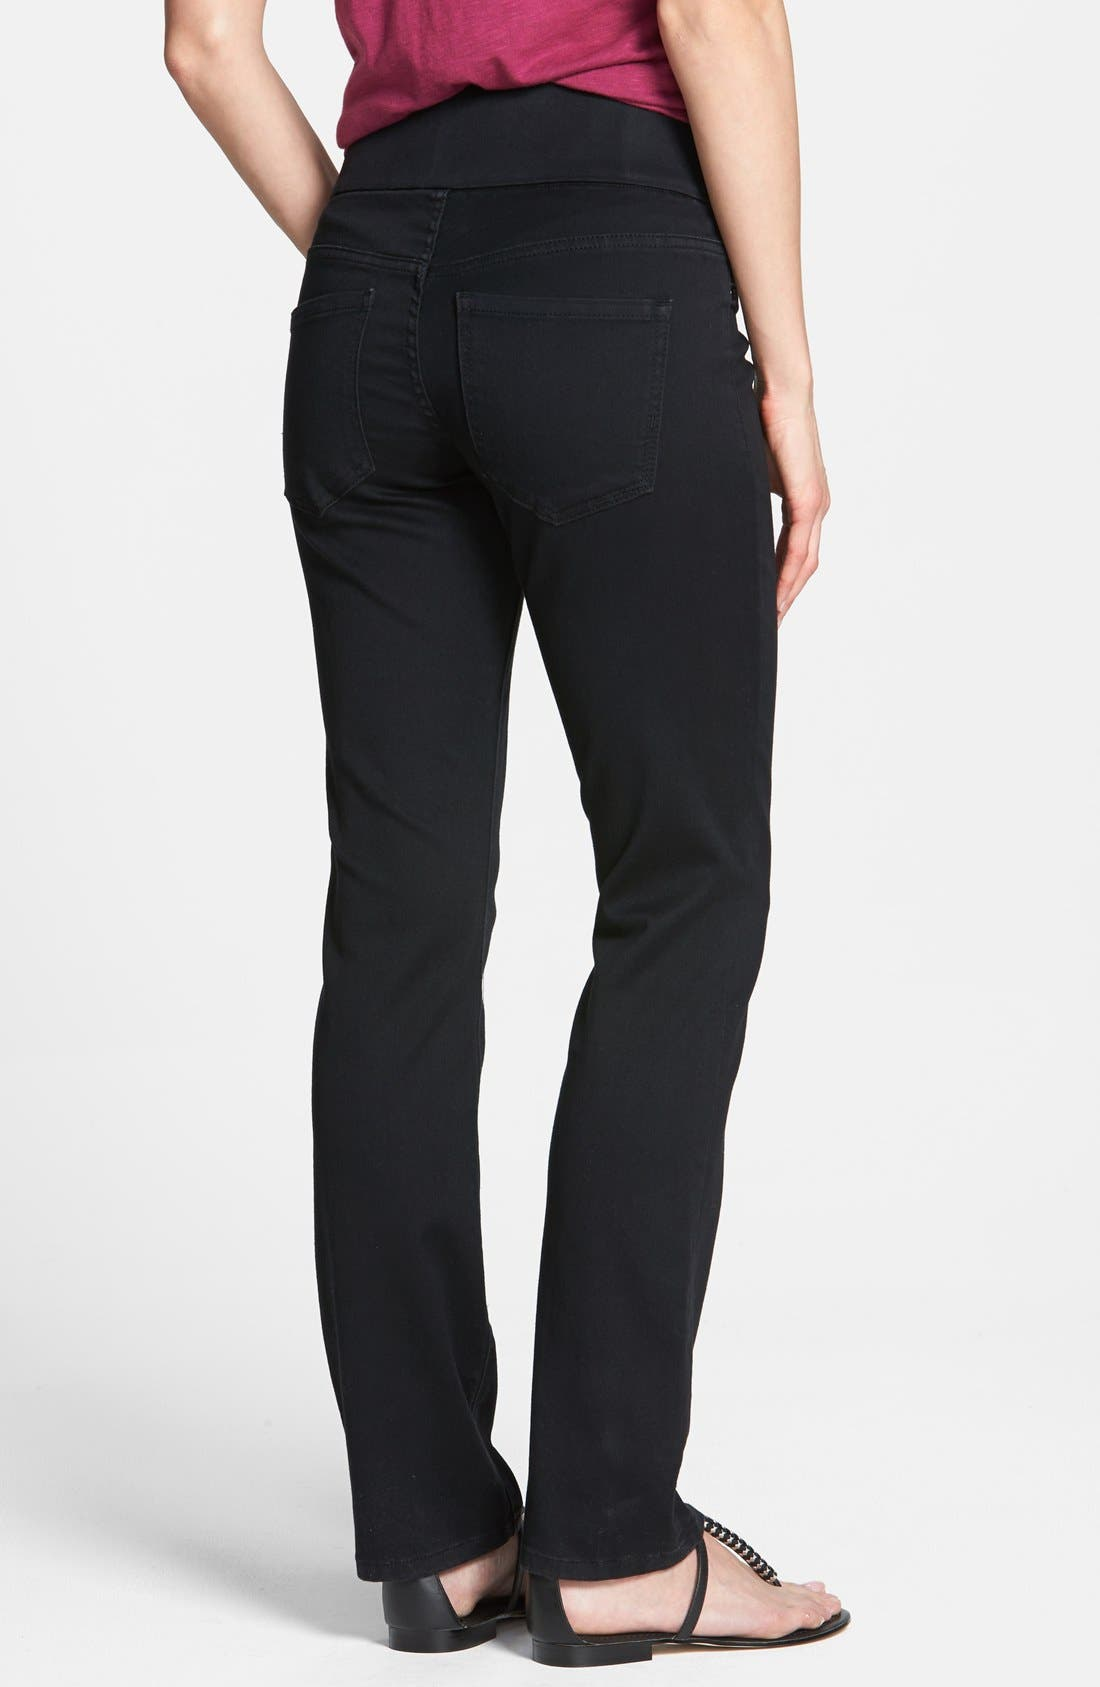 Alternate Image 2  - Liverpool Jeans Company 'Jillian' Pull-On Straight Leg Jeans (Black Rinse)